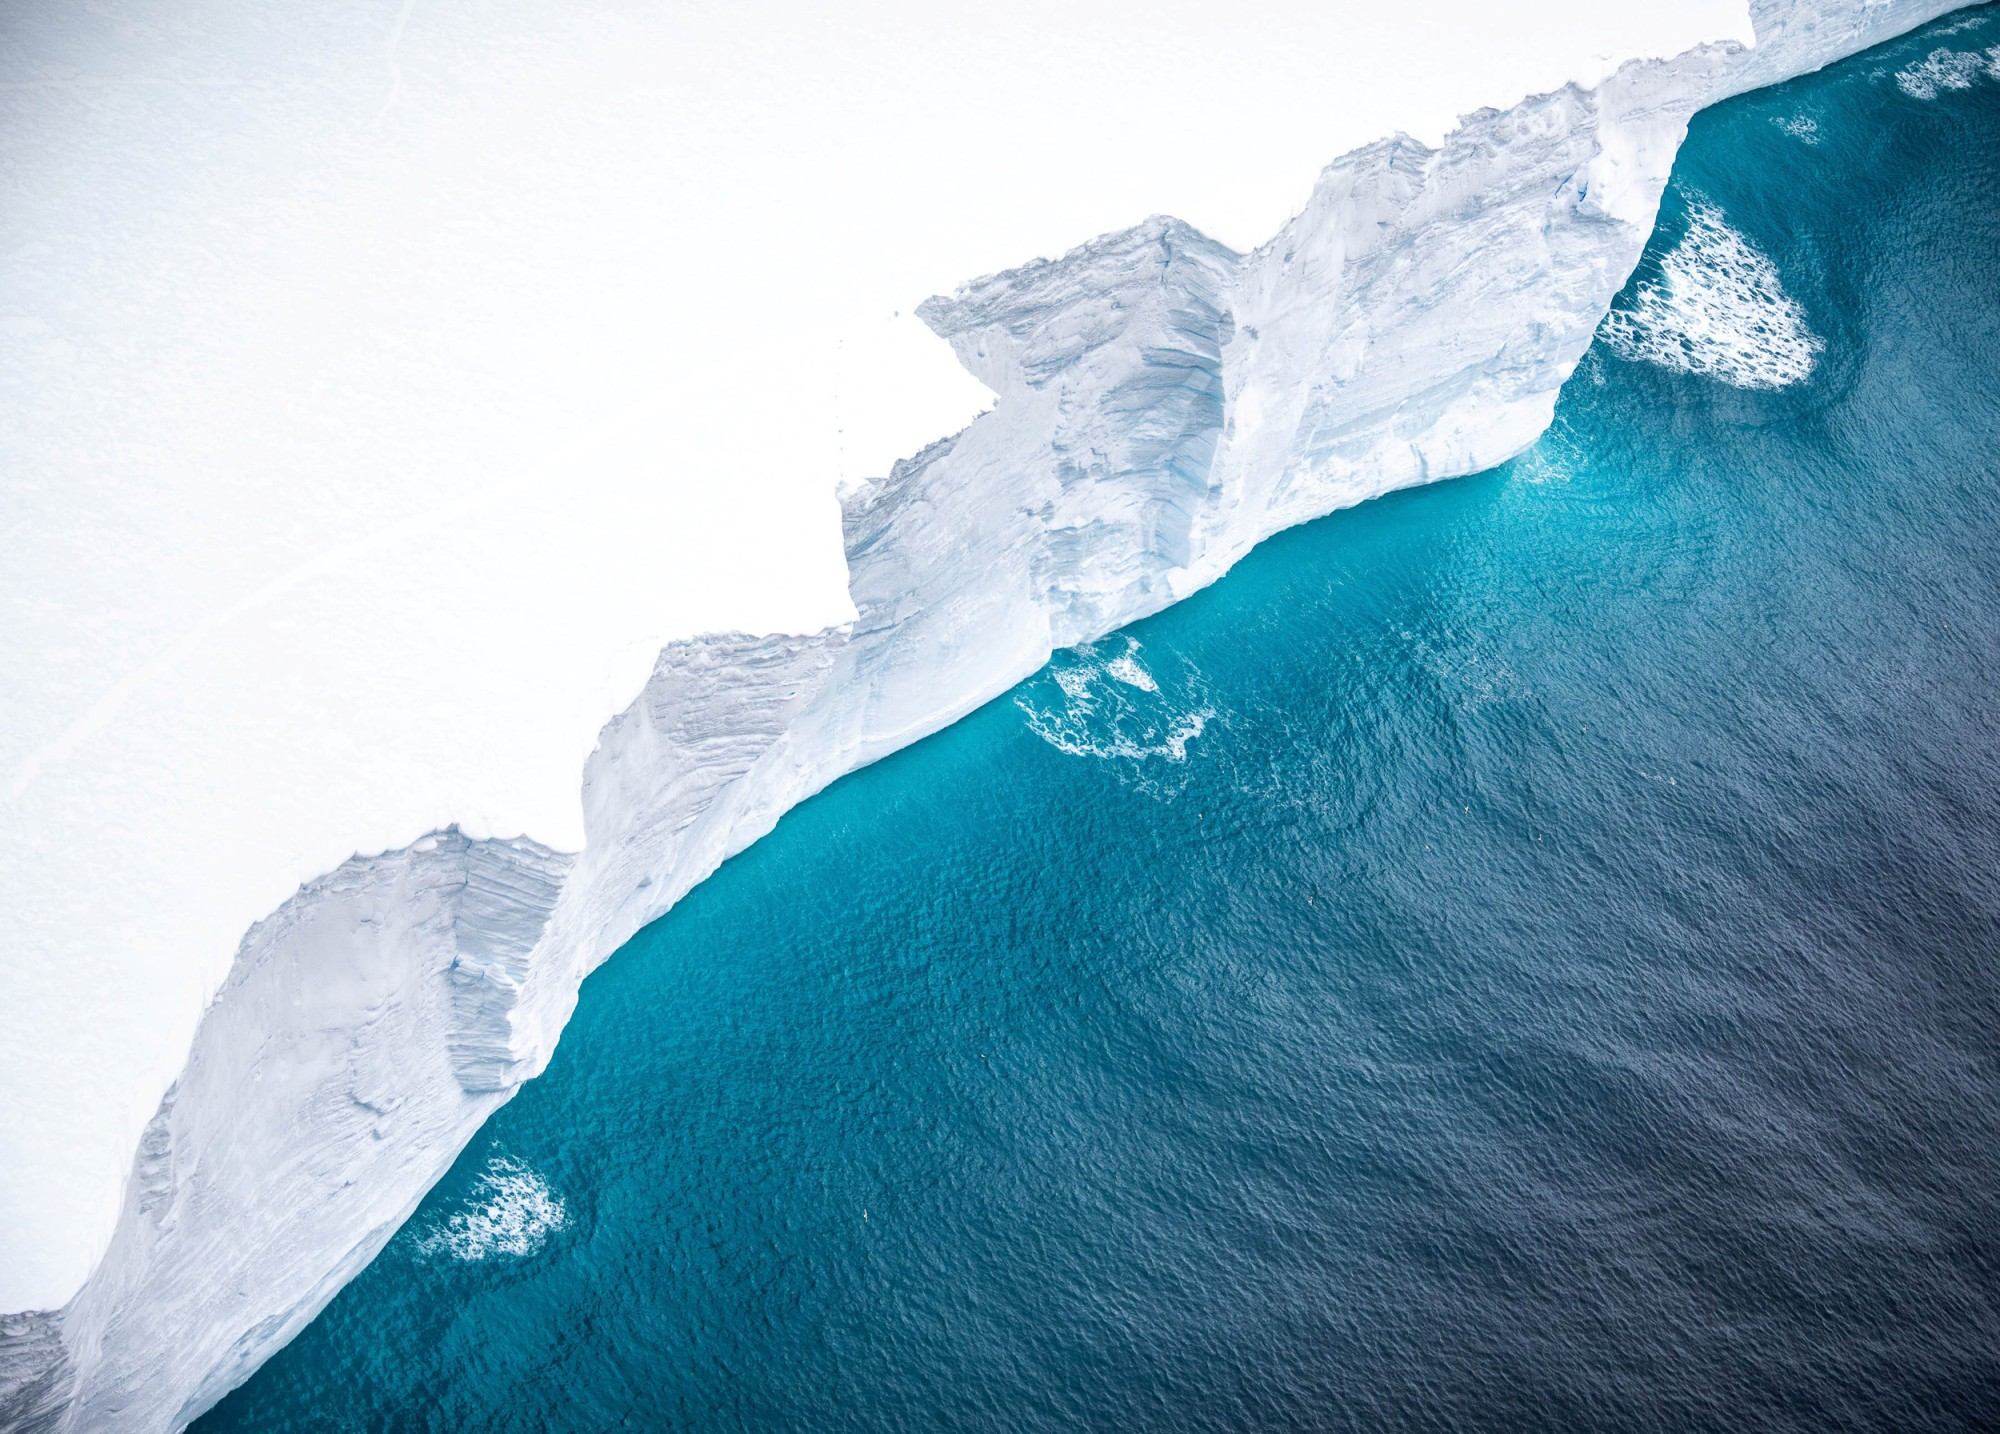 Giant Iceberg Could Collide With South Georgia Island This Month, Endangering Wildlife